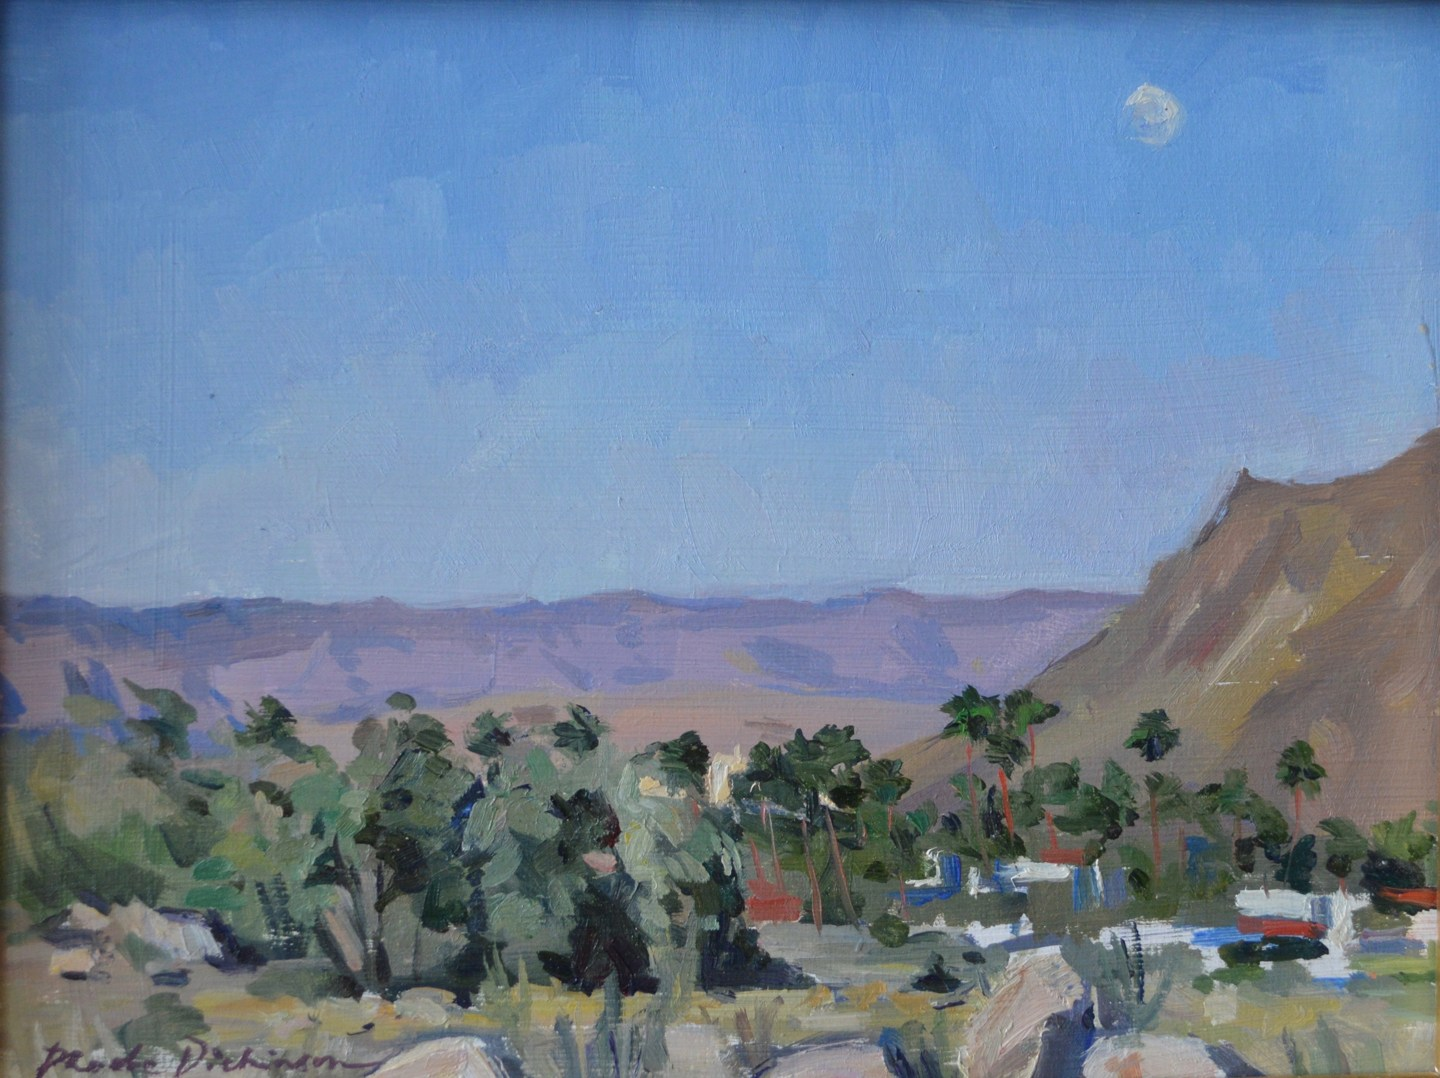 Moonrise over the desert